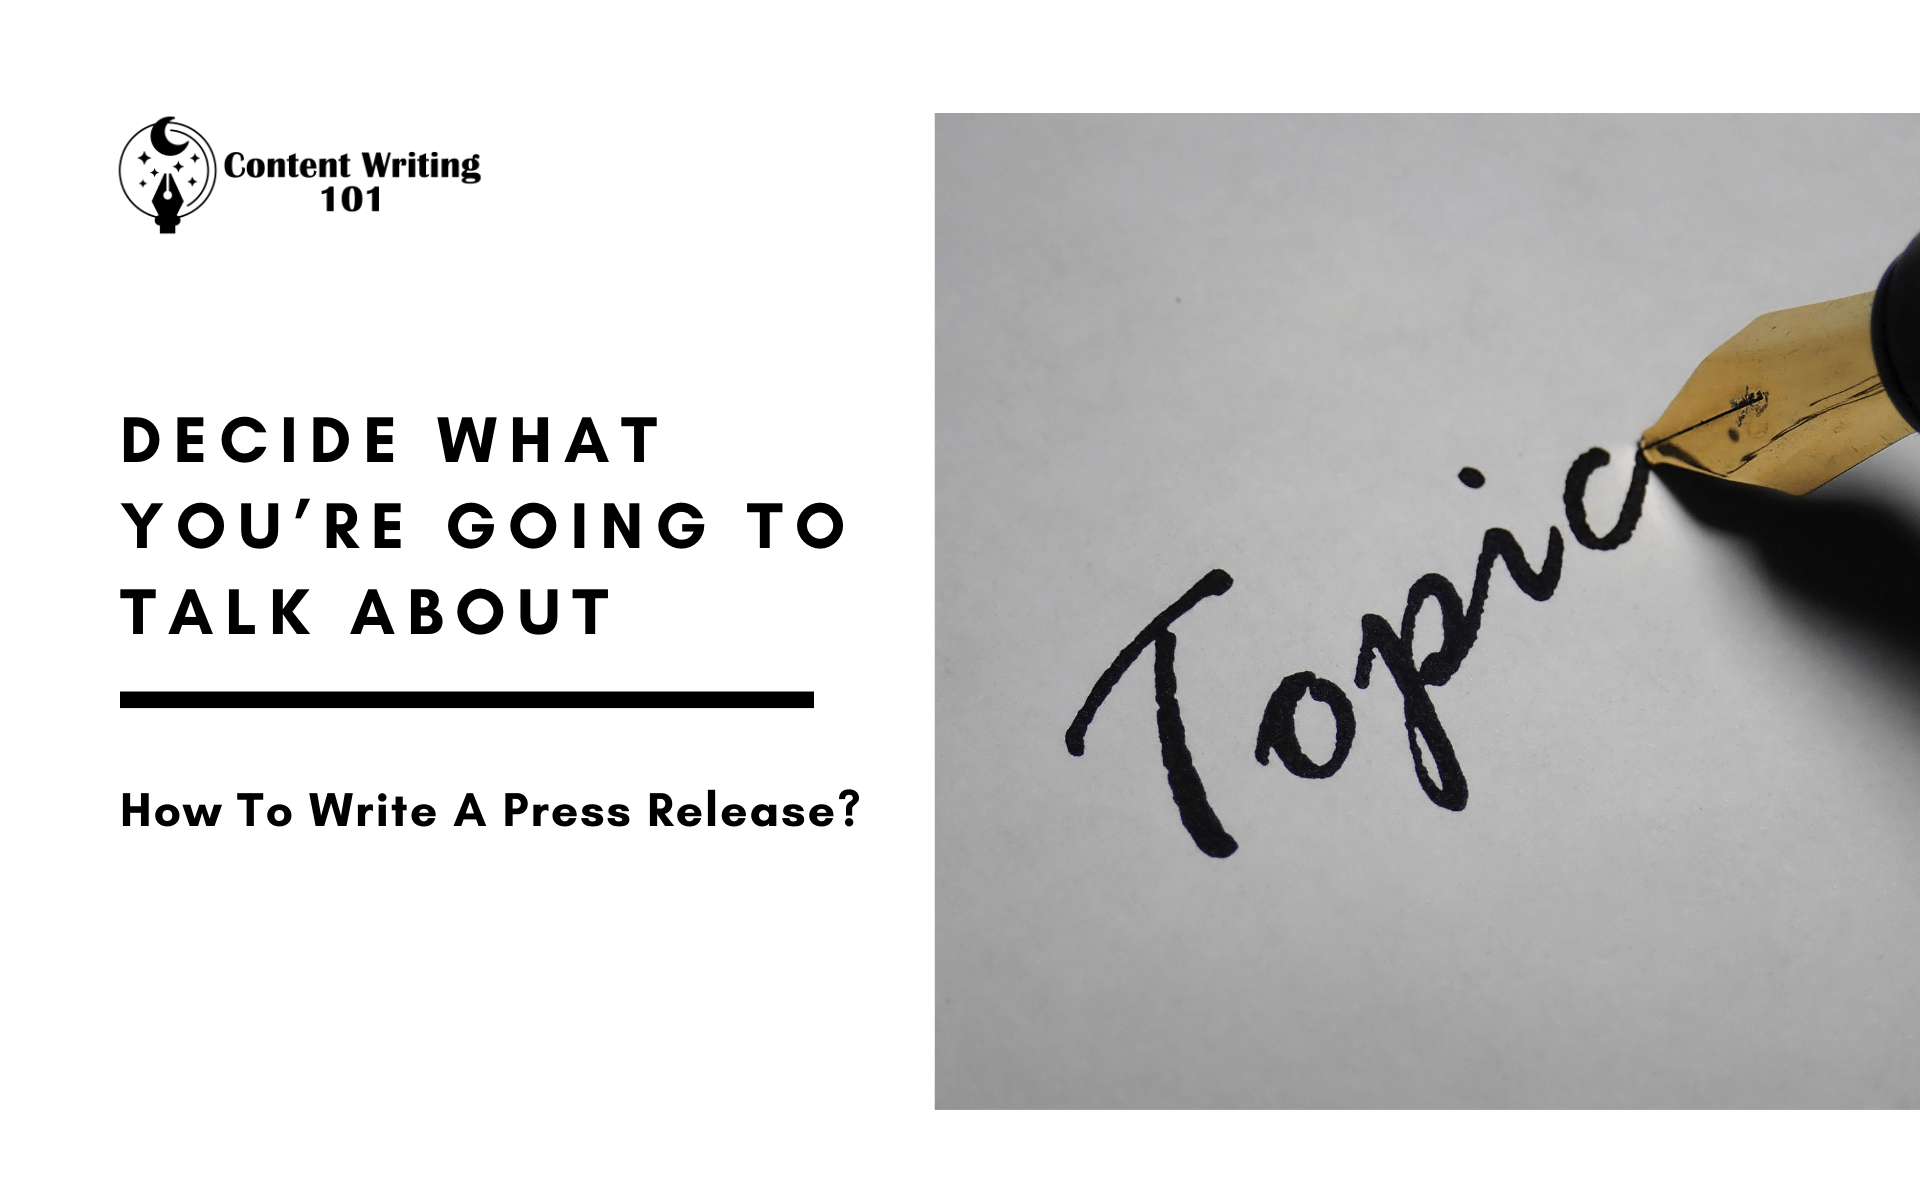 How To Write A Press Release?